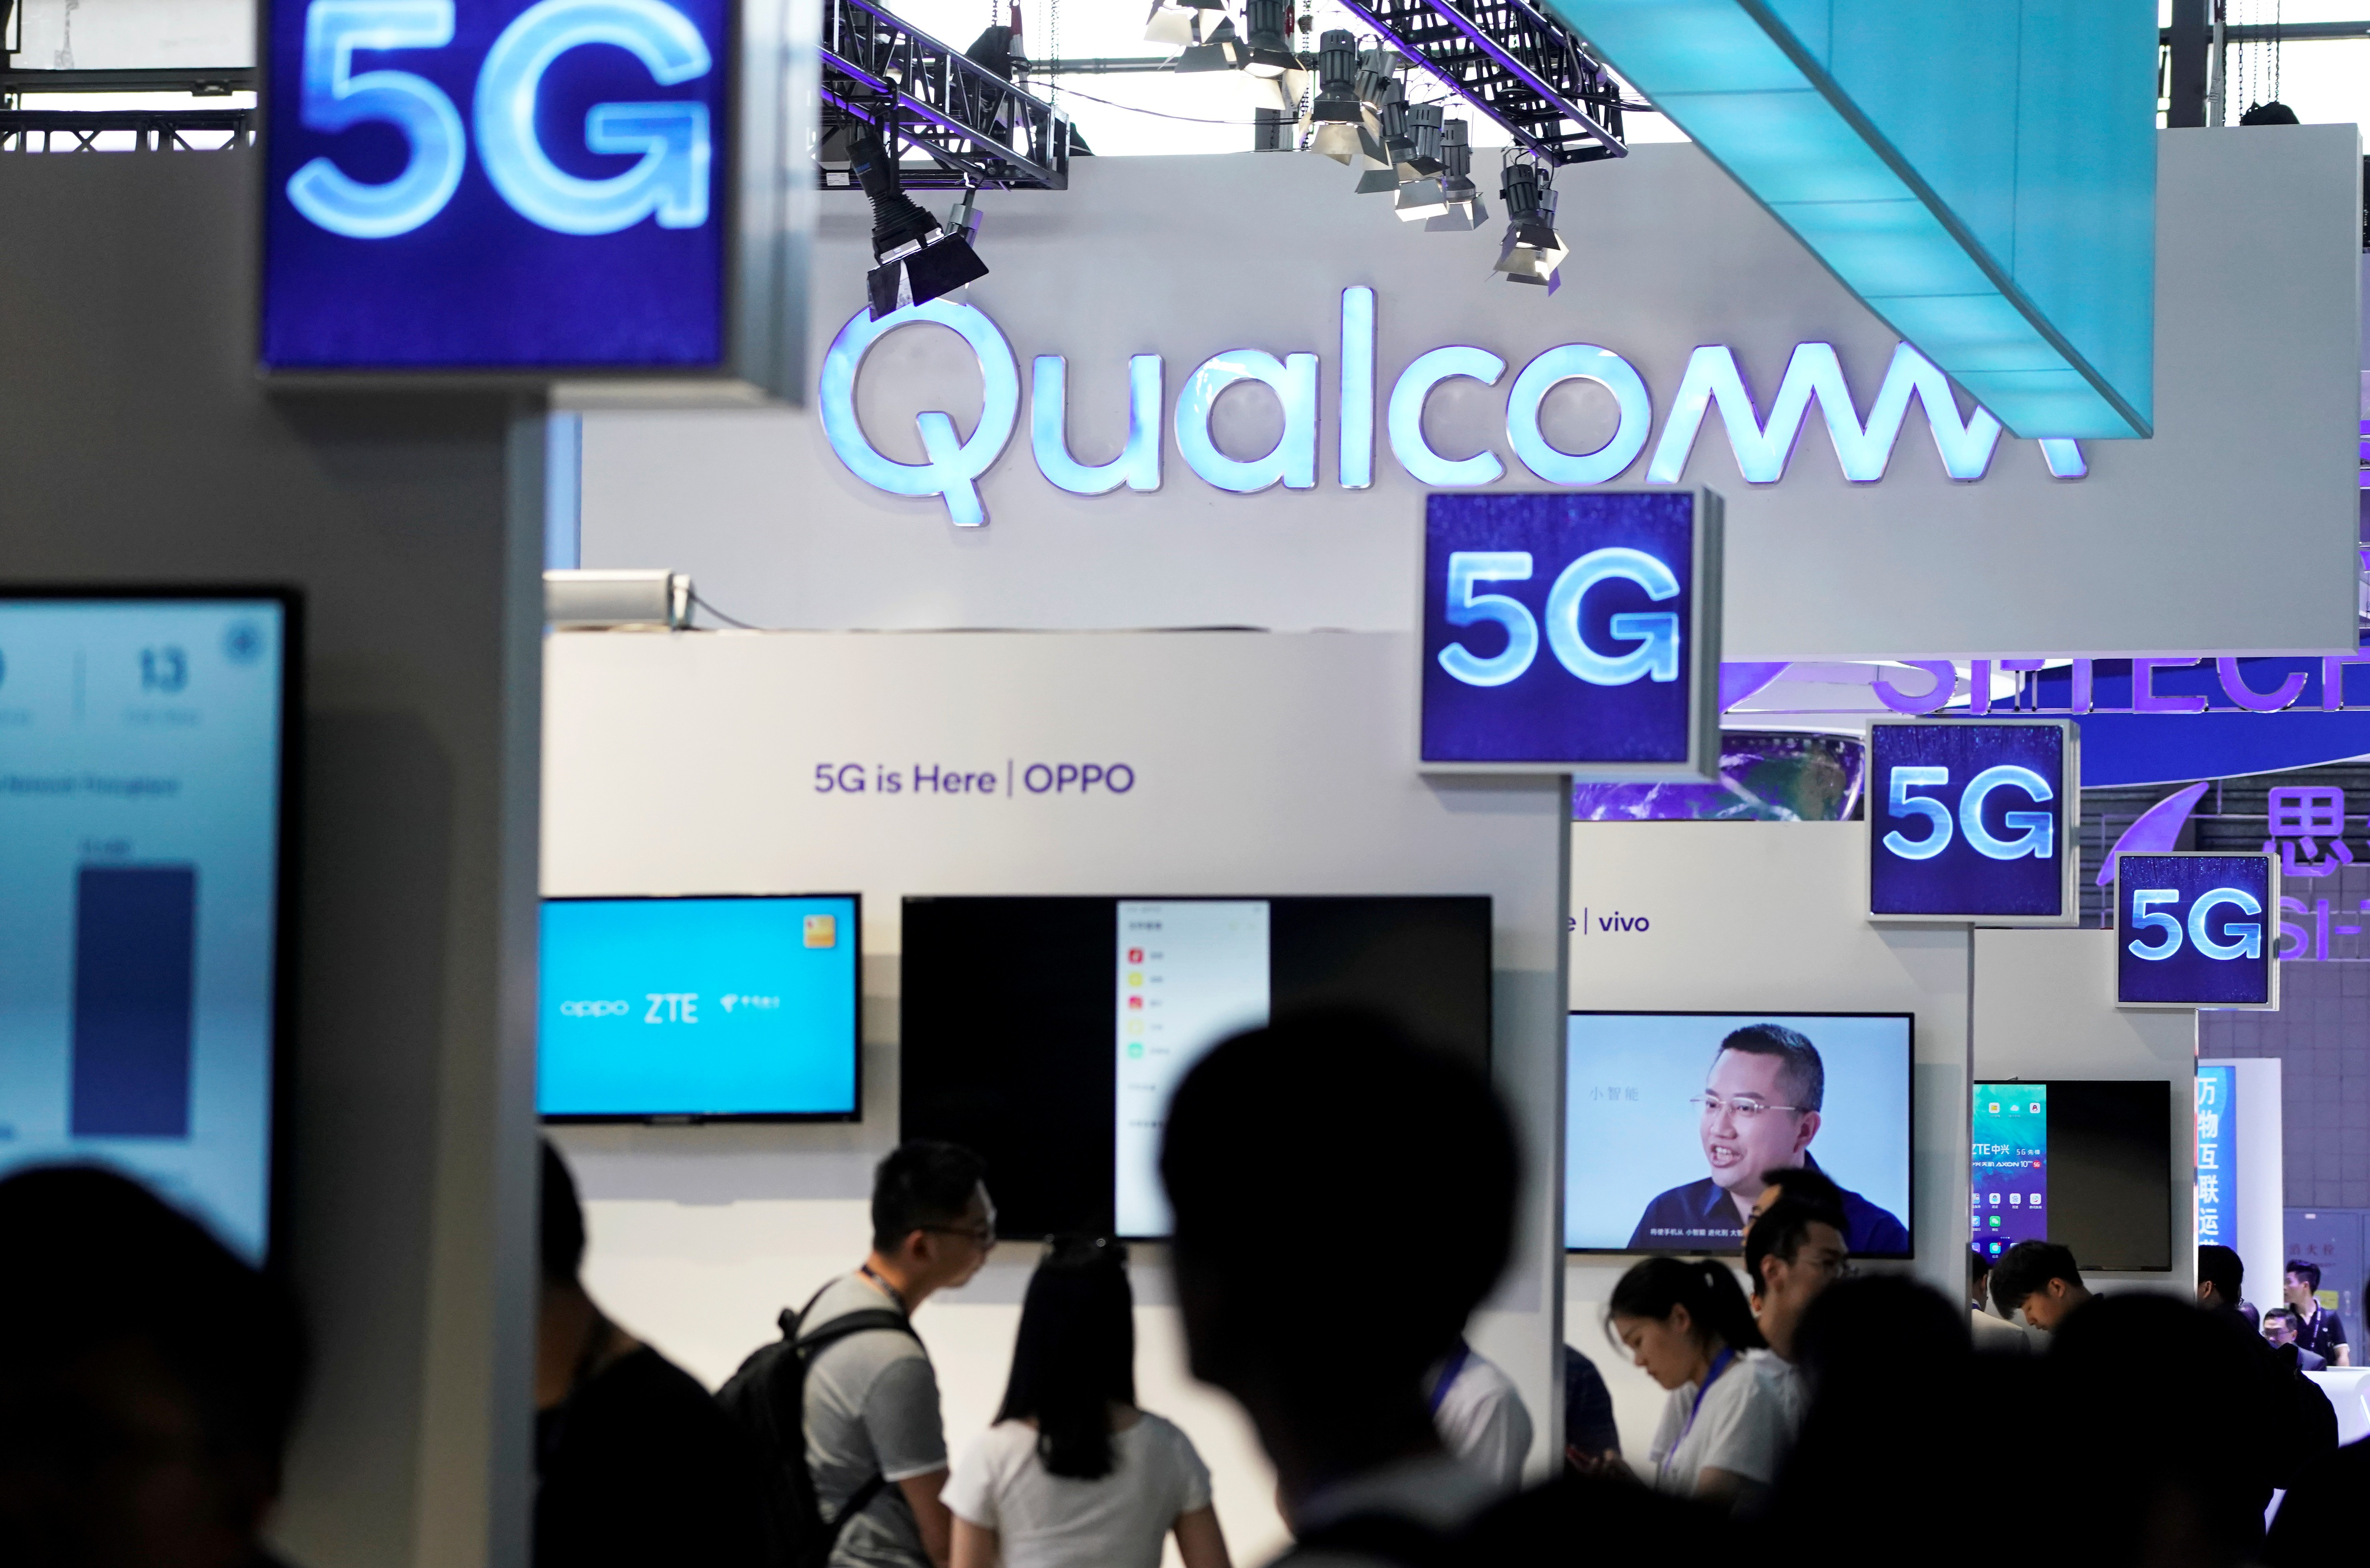 How 5G will transform sports viewing, VR gaming and